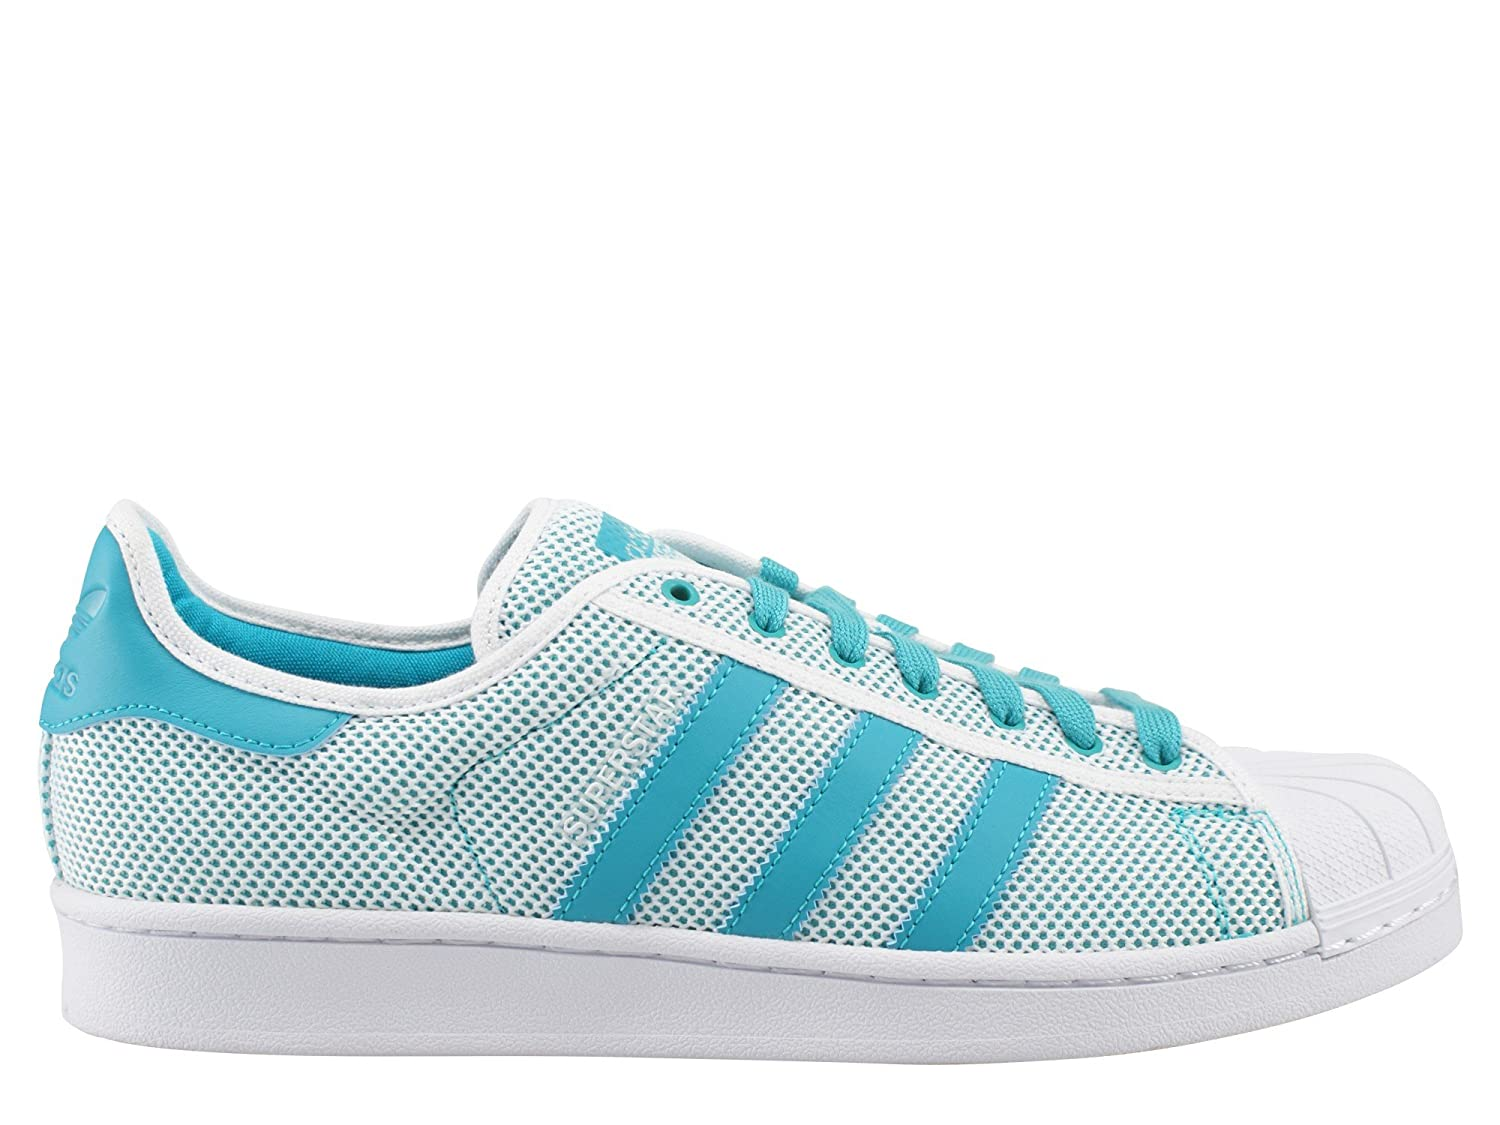 adidas Superstar Adicolor S76503, Turnschuhe  37 1/3 EU